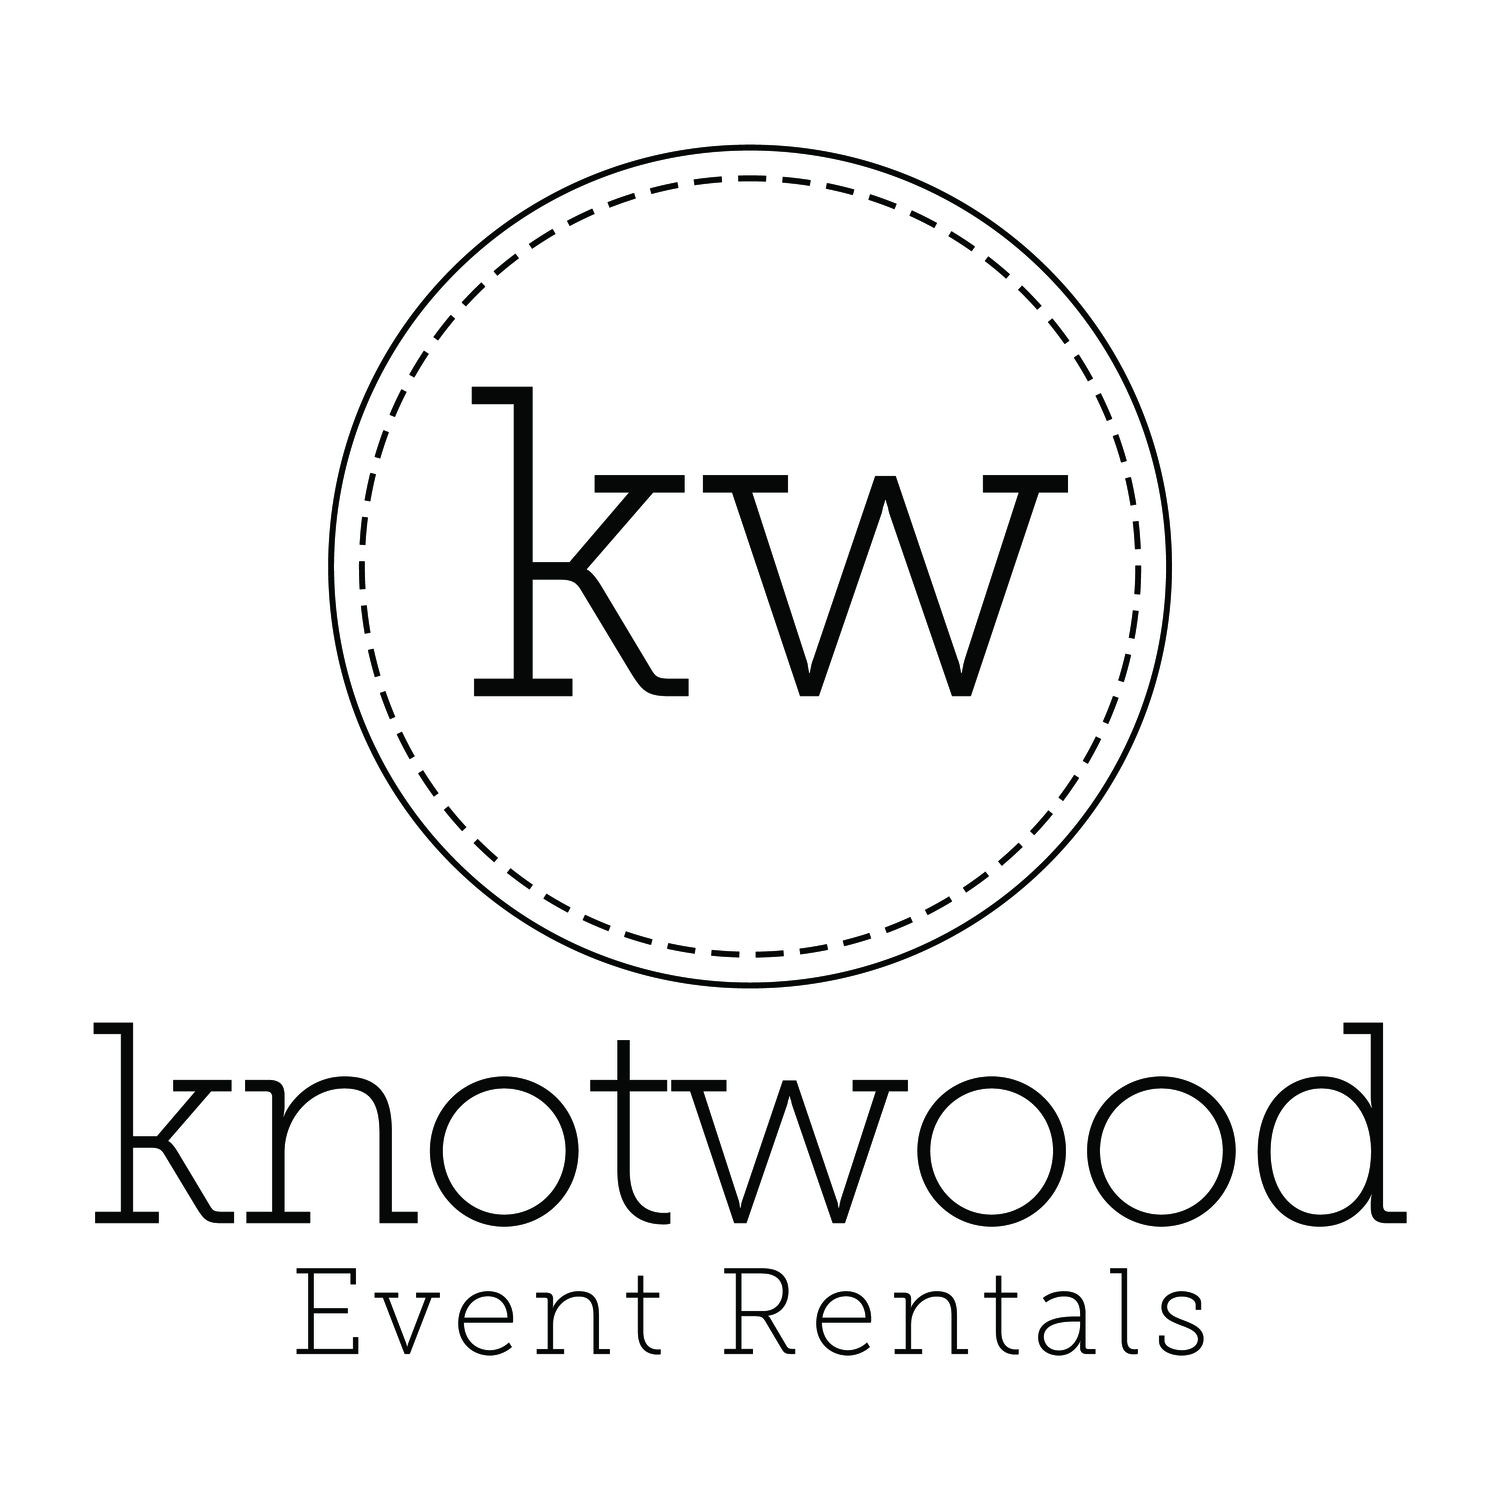 Knotwood Event Rentals